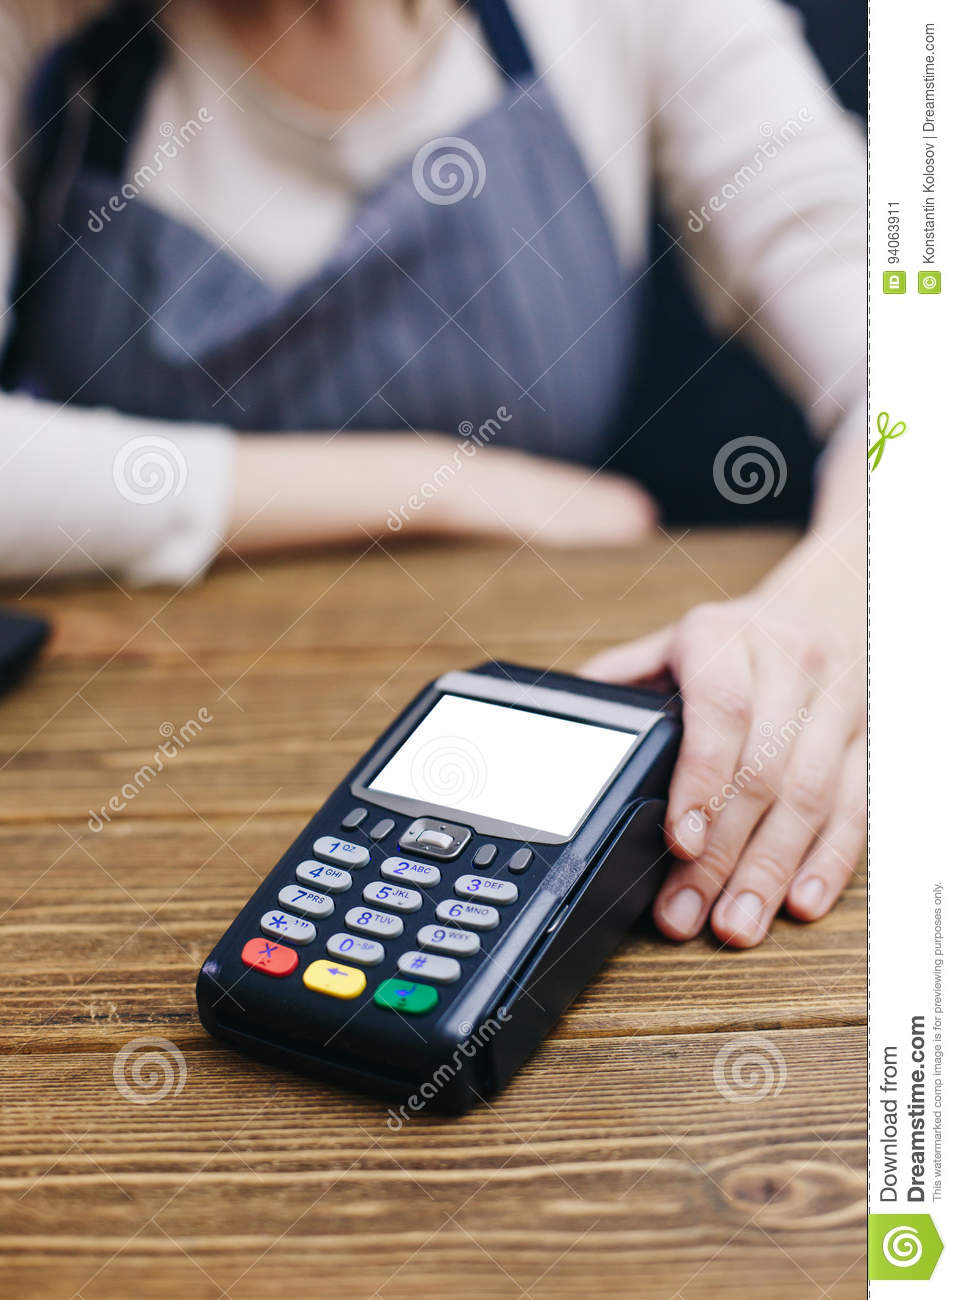 Seller and POS machine